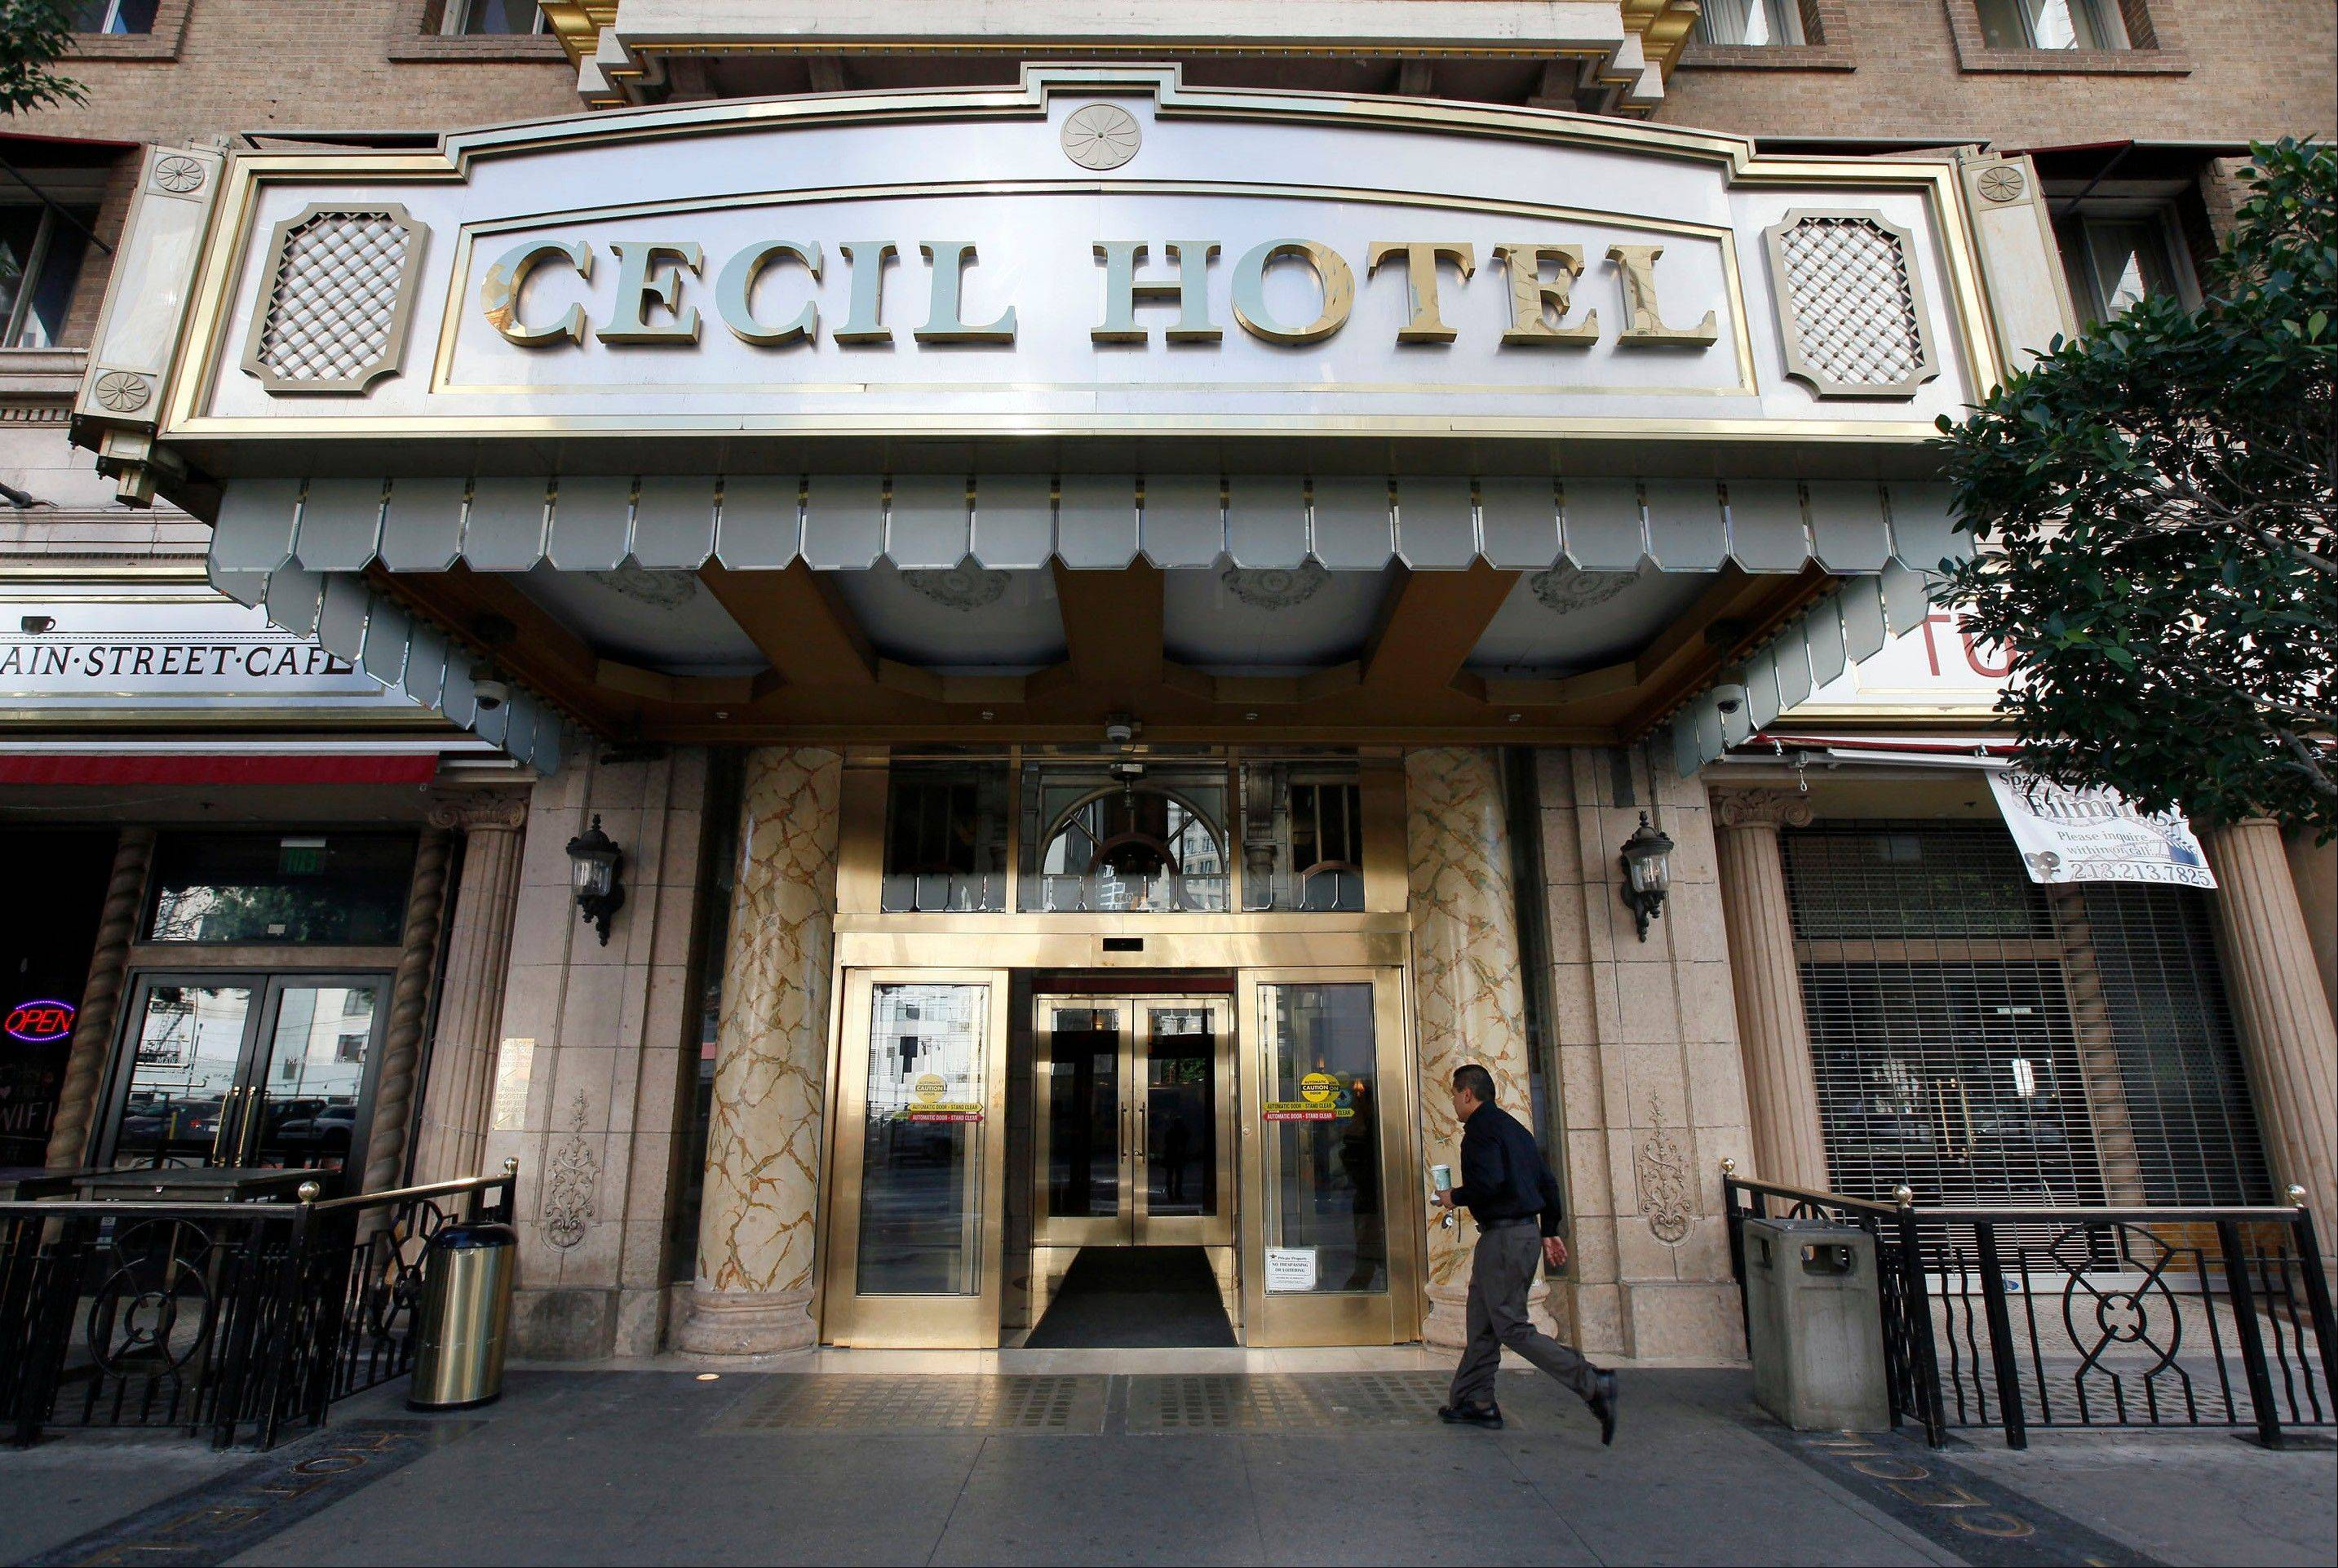 A visitor arrives at the Hotel Cecil, where police say the body of a woman was found wedged in one of the water tanks on the roof was that of a missing Canadian guest. Investigators used body markings to identify 21-year-old Elisa Lam, police spokeswoman Officer Diana Figueroa said late Tuesday. A maintenance worker at the Cecil Hotel found the body earlier in the day after guests complained of low water pressure.